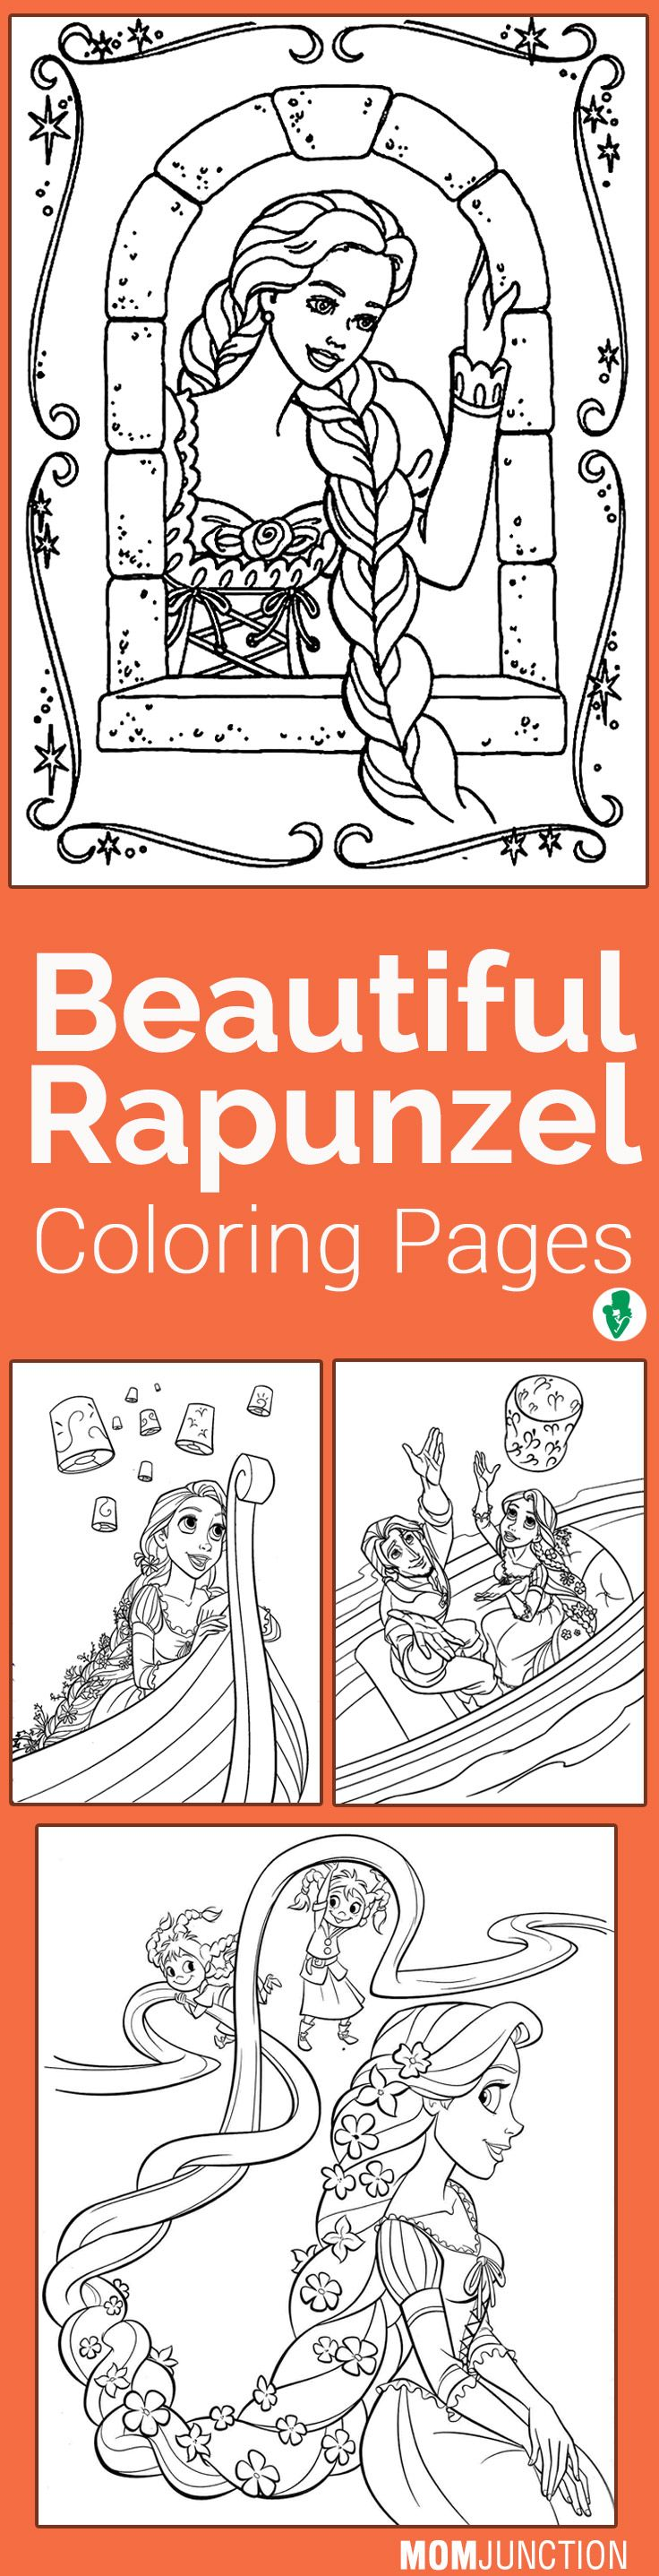 Ra rapunzel coloring pictures - 15 Beautiful Rapunzel Coloring Pages For Your Little Girl